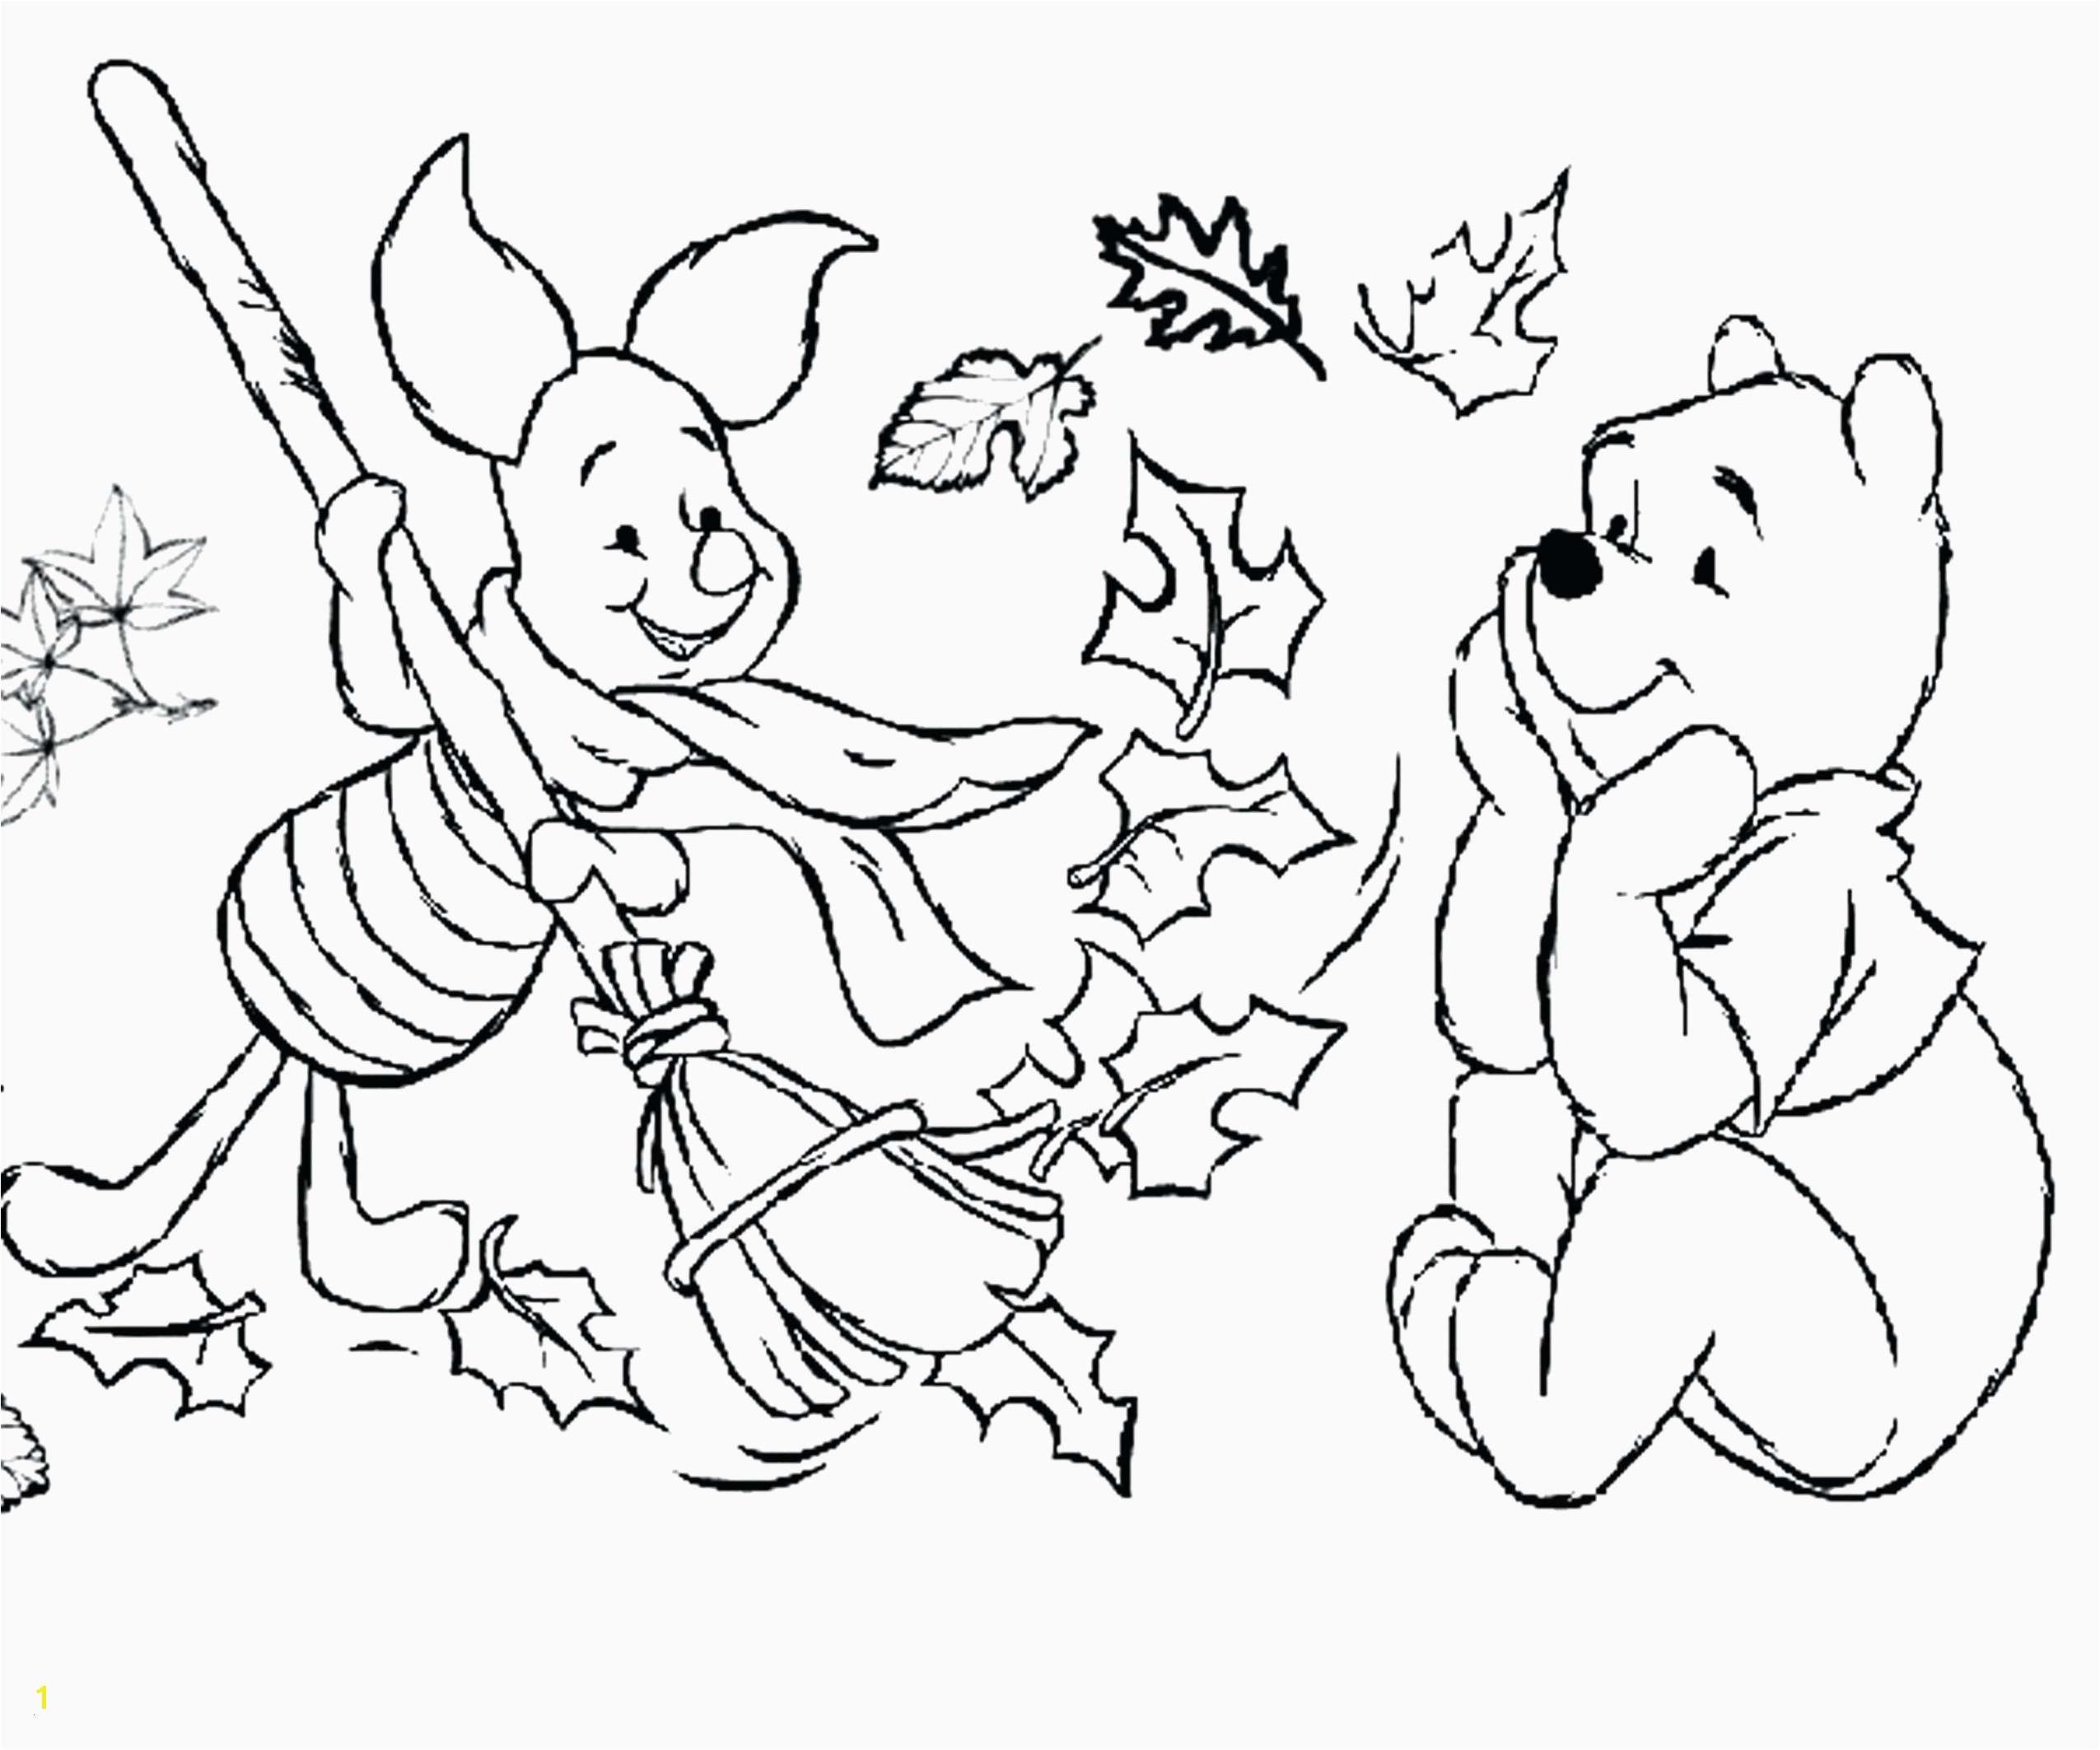 Turtle Coloring Pages Printable Turtle Coloring Pages Coloring Pages for Kides Beautiful Coloring